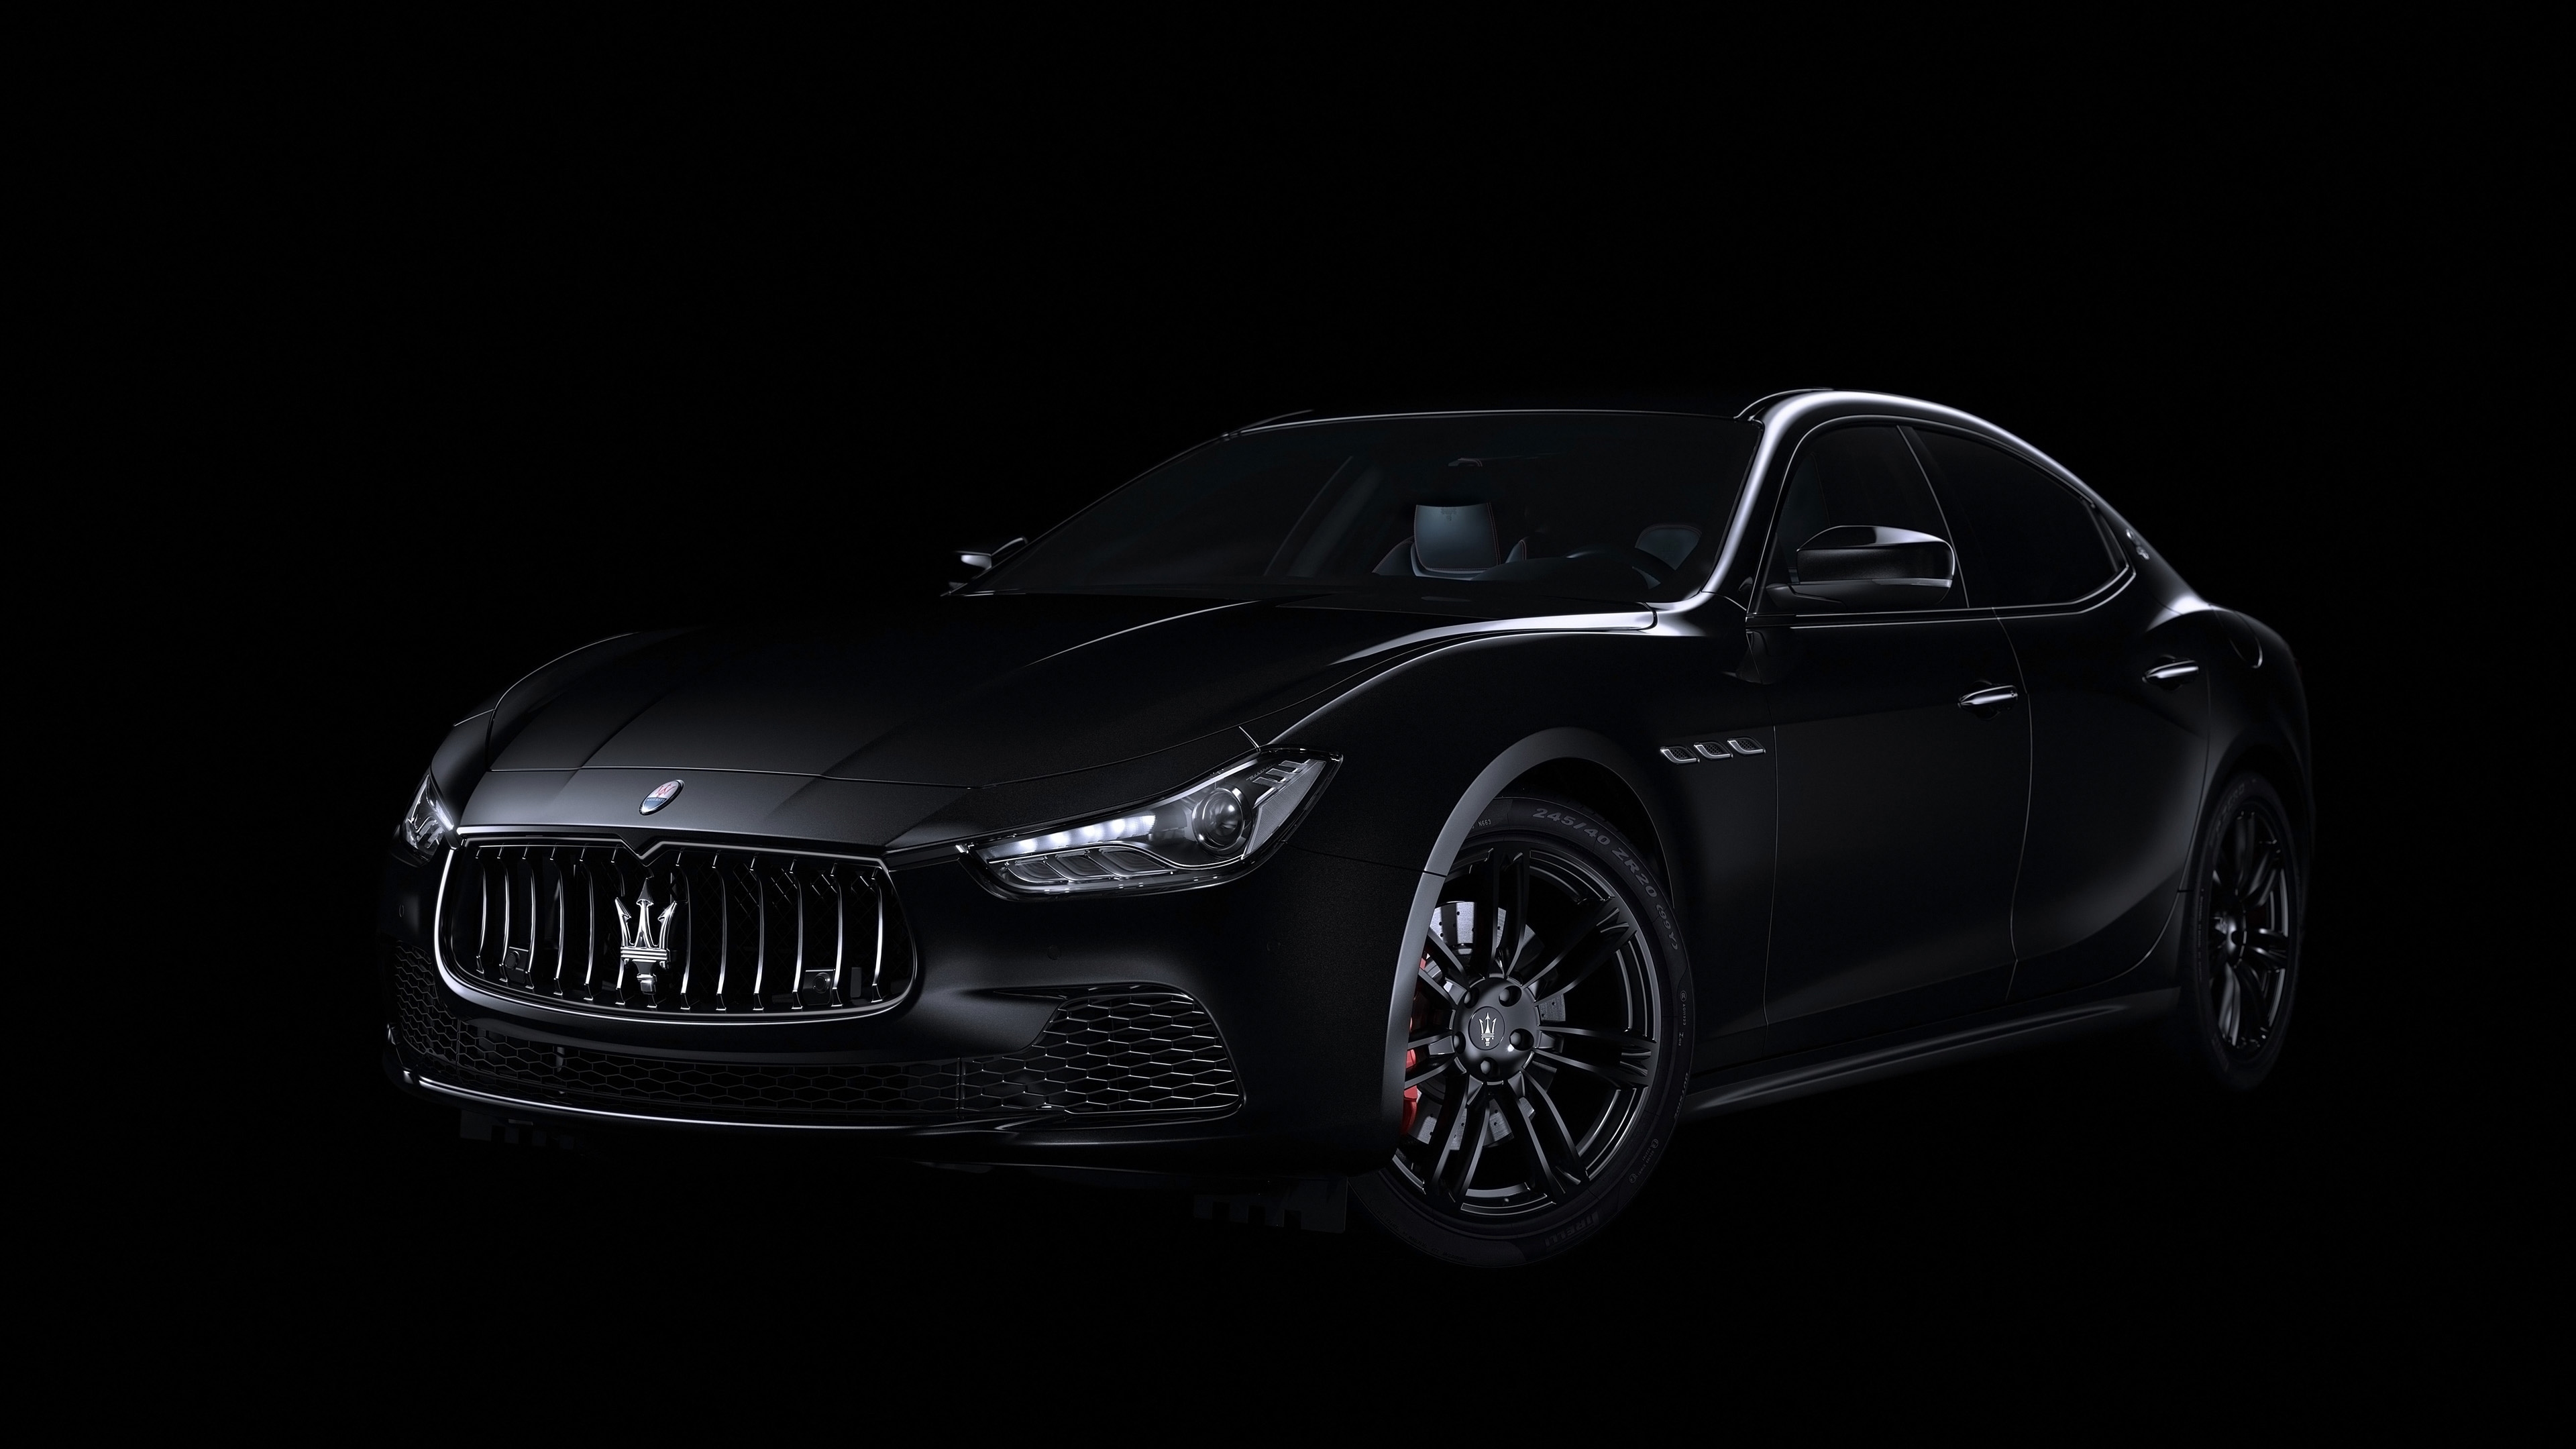 2018 maserati ghibli nerissimo black edition 4k wallpaper hd car 2018 maserati ghibli nerissimo black edition 4k voltagebd Images